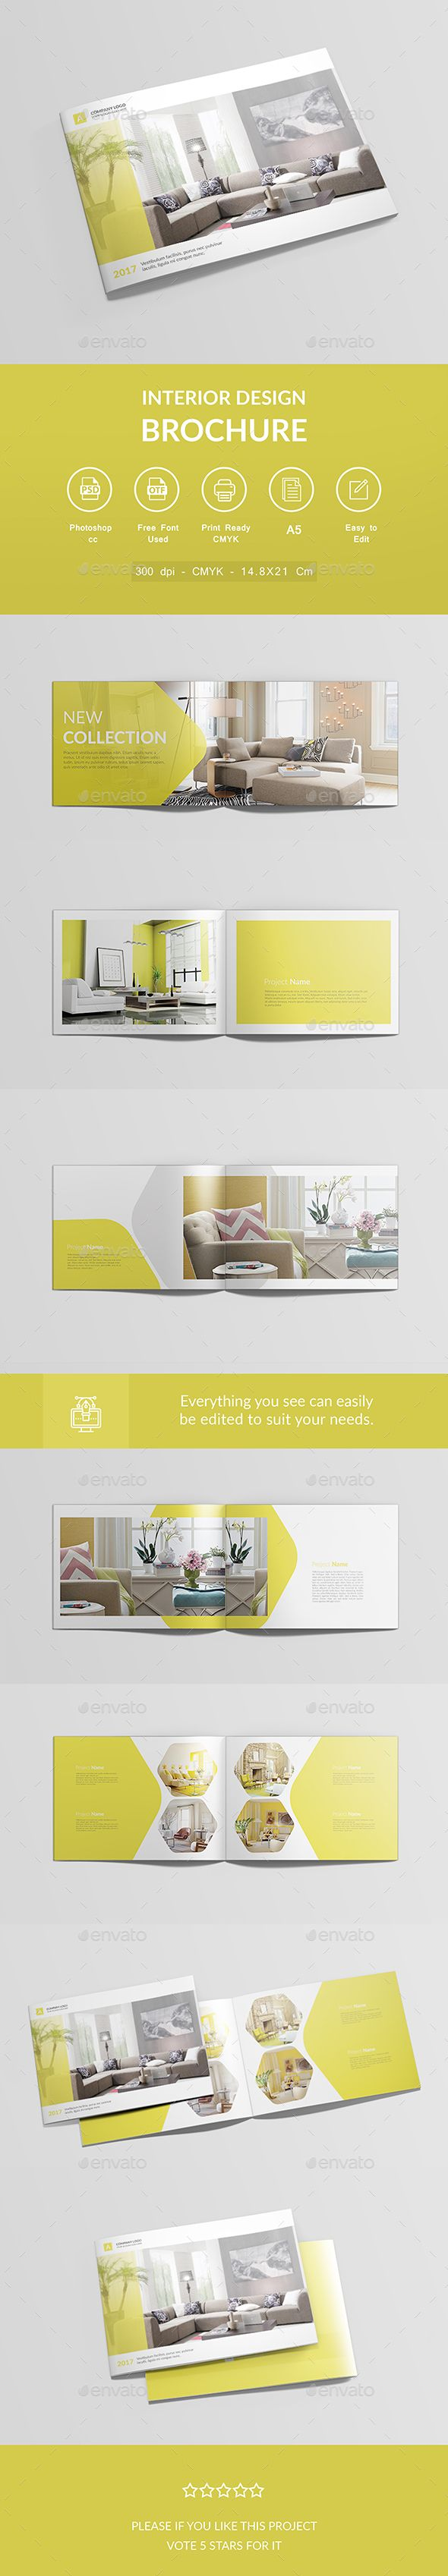 Interior Design Brochure — PSD Template